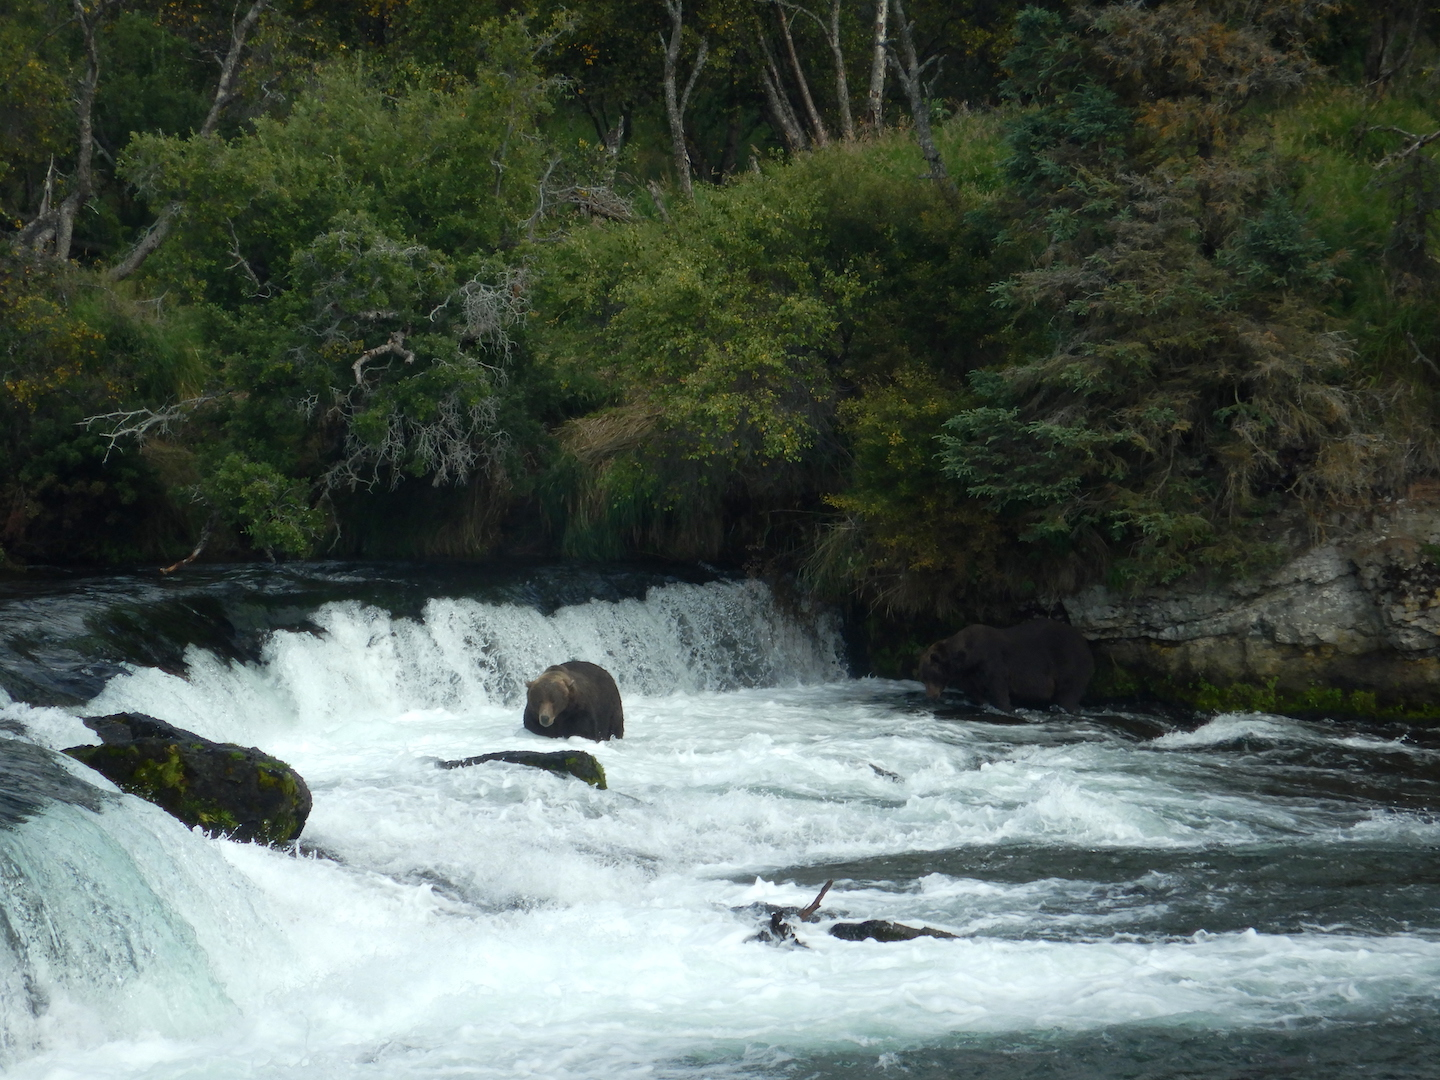 Bears standing at waterfall